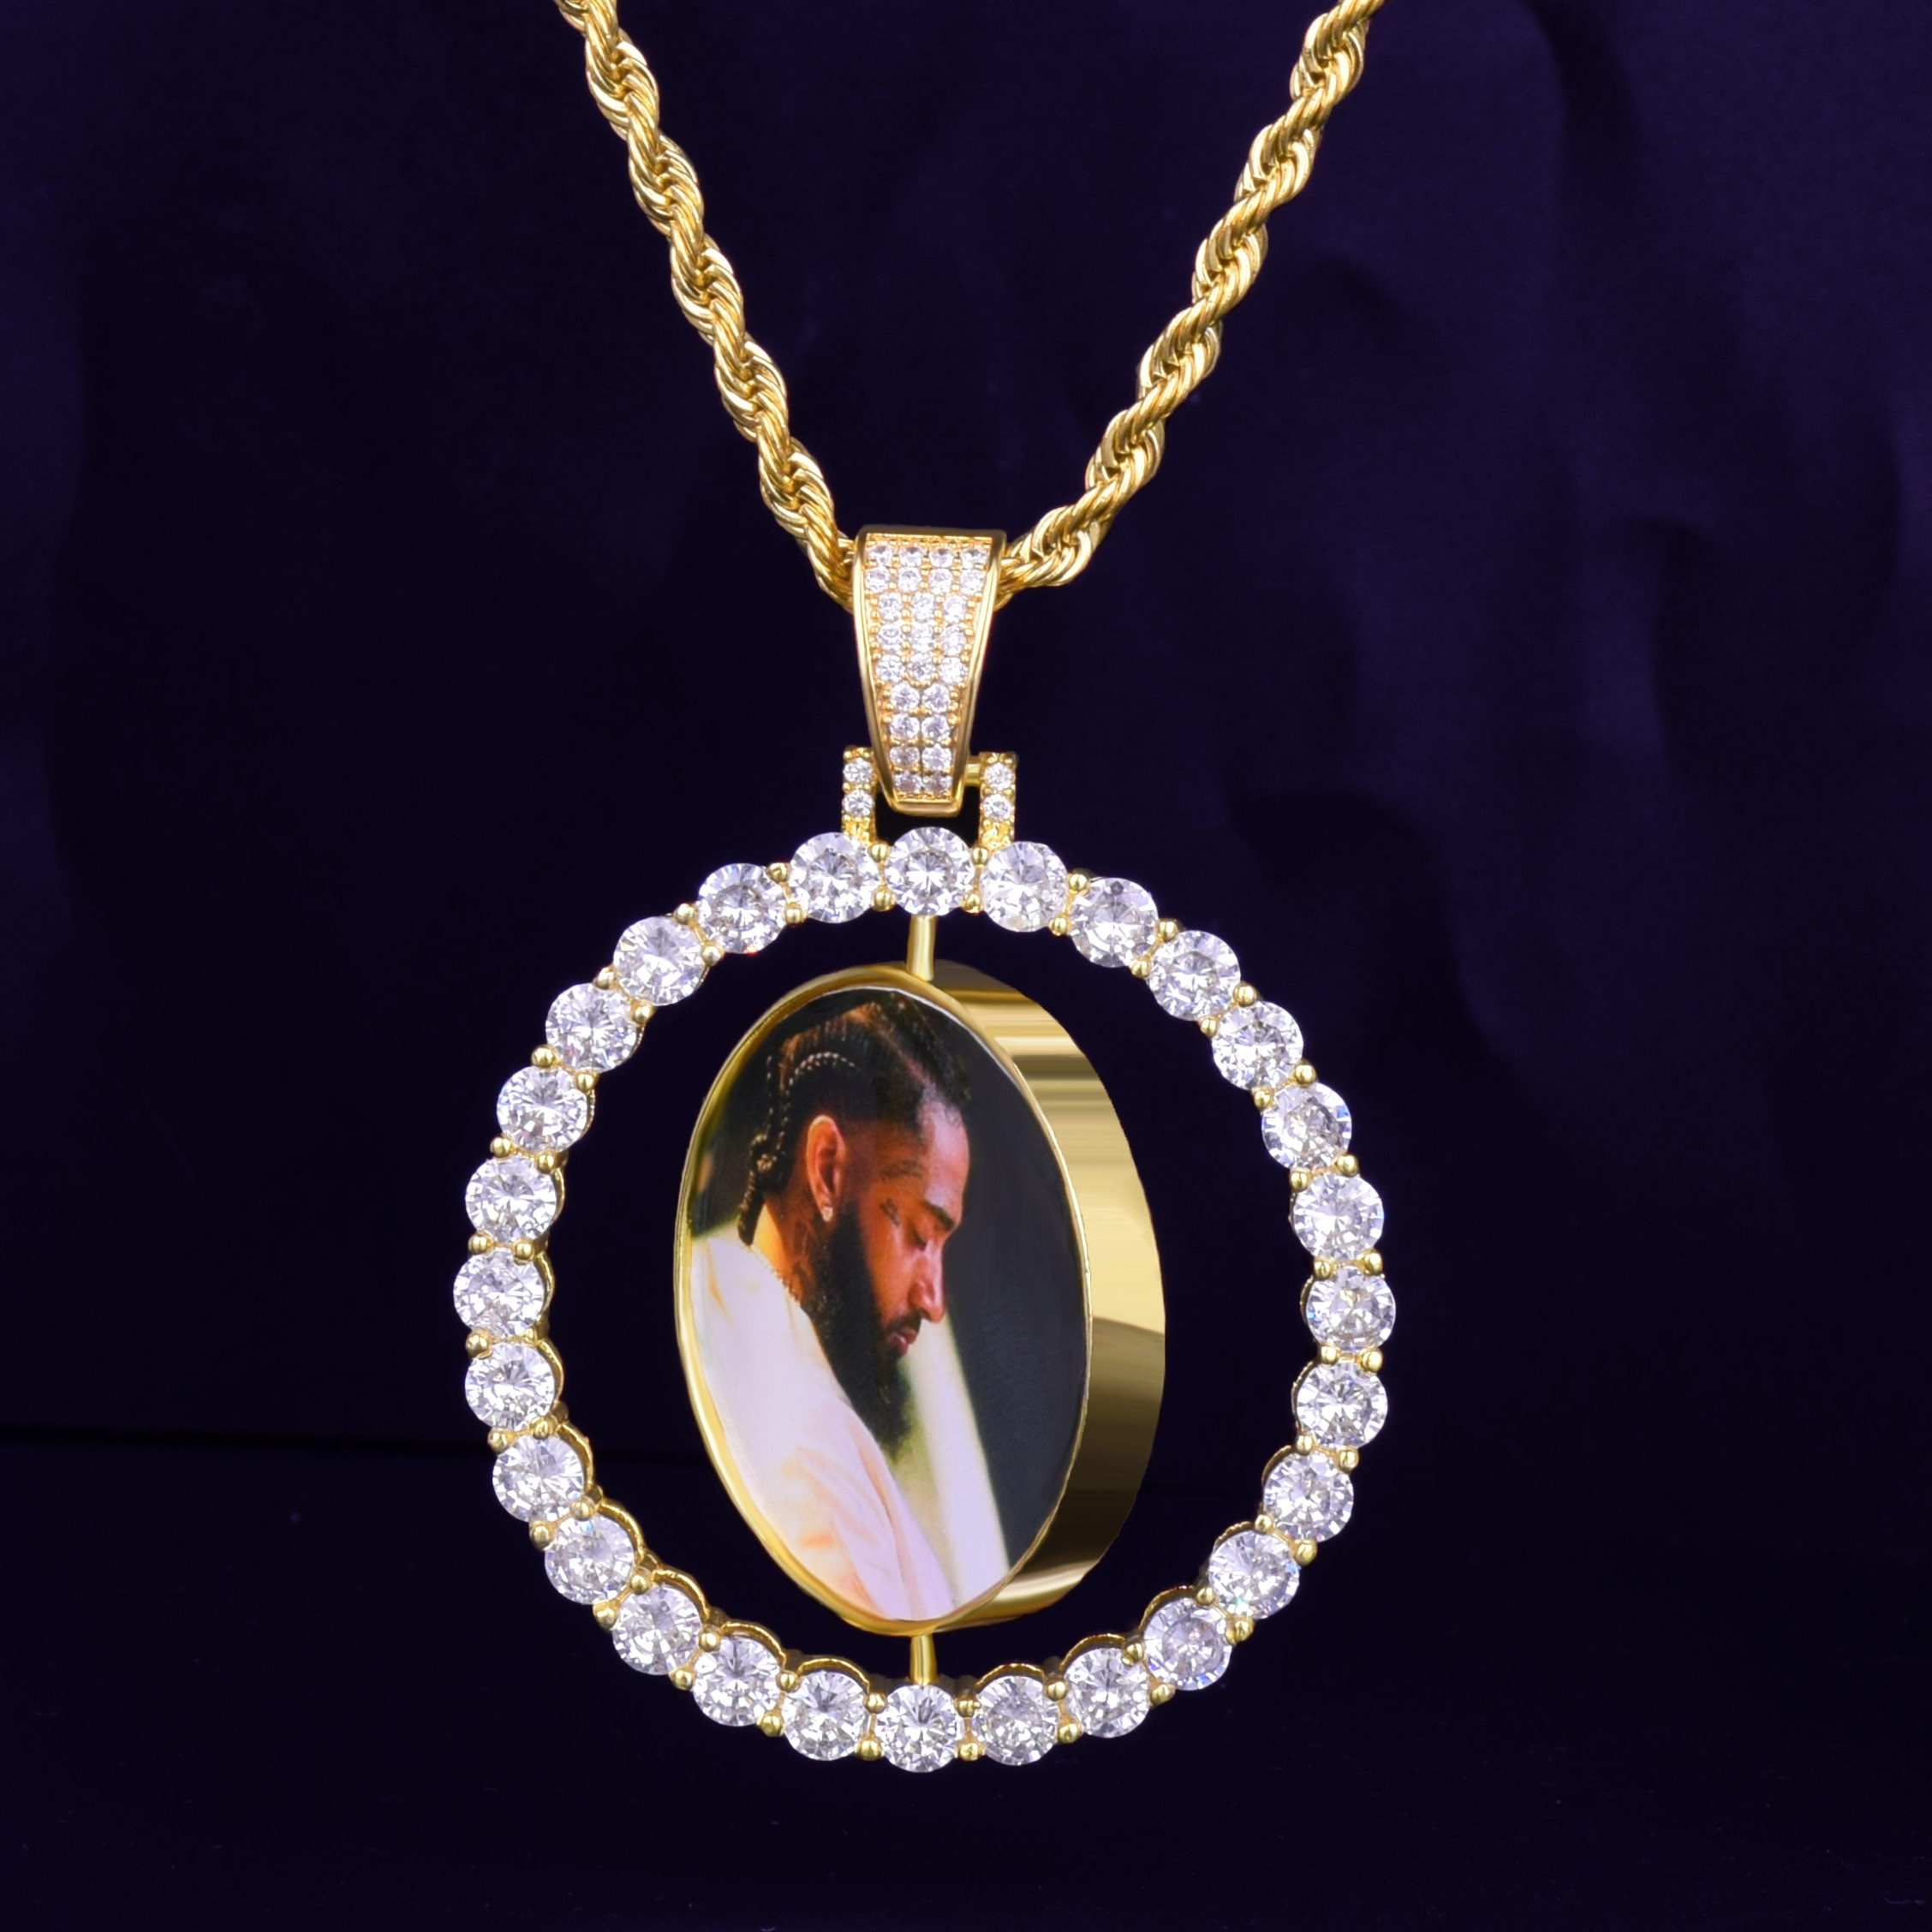 Custom Made Lad Diamond Iced Photo Rotating Double-Sided Bling Pendant  Chain Necklace